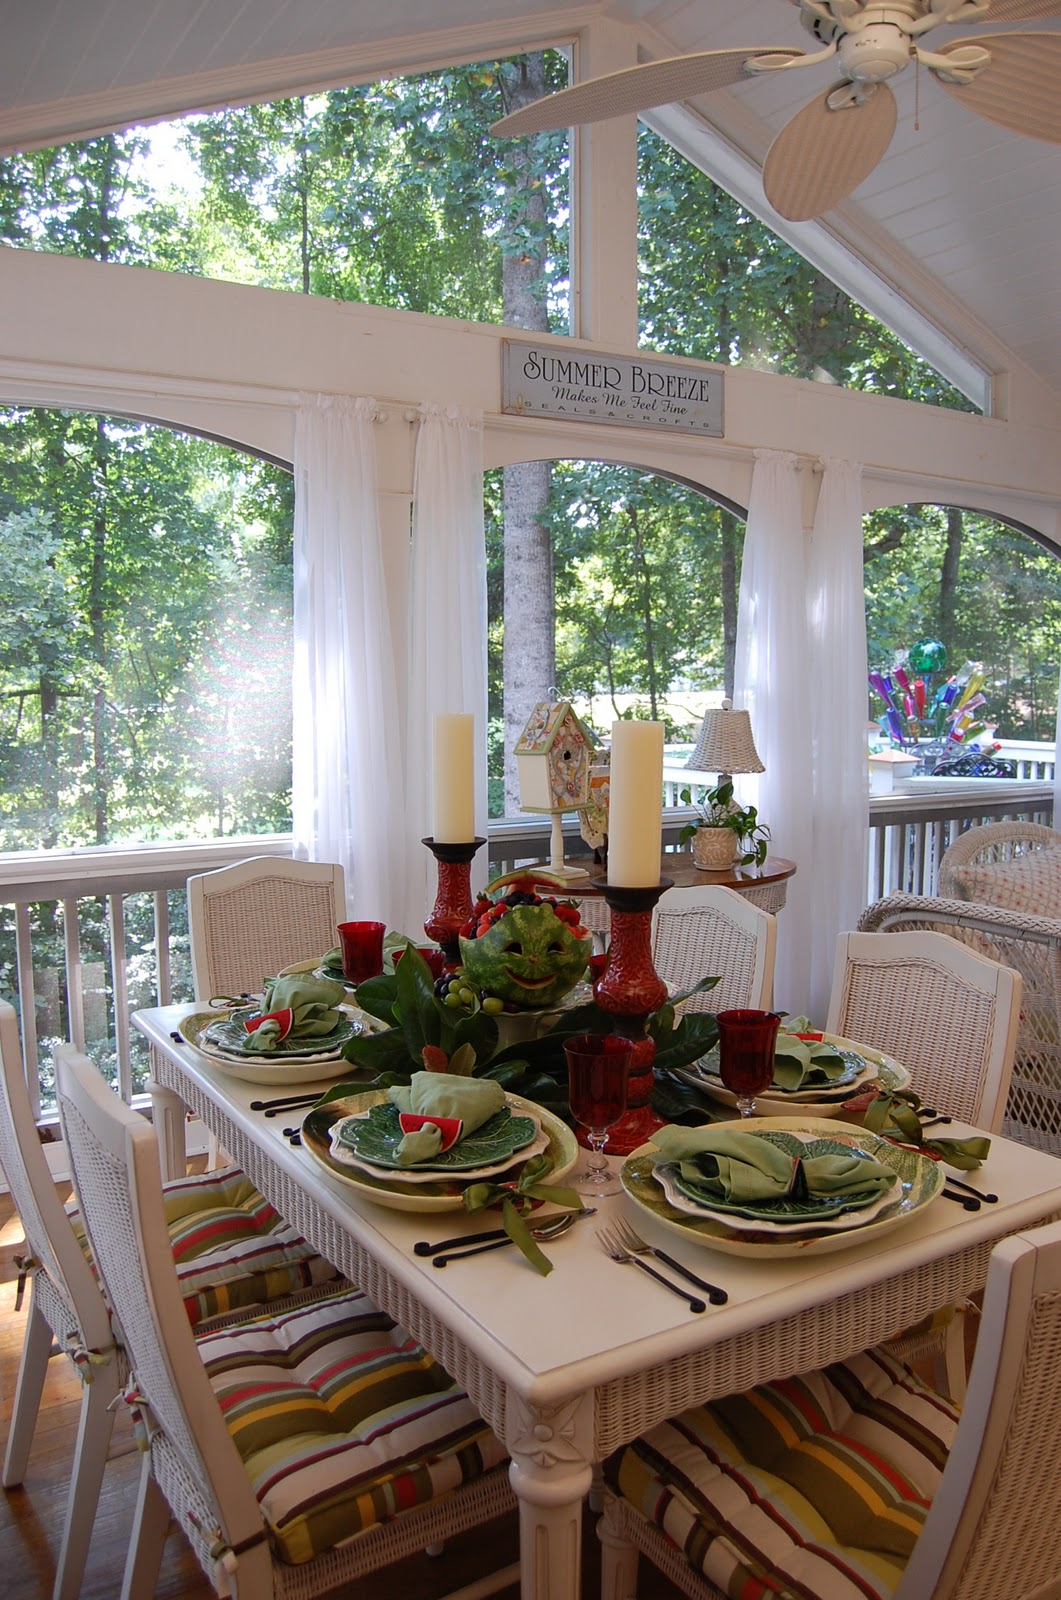 One Last Summer Tablescape